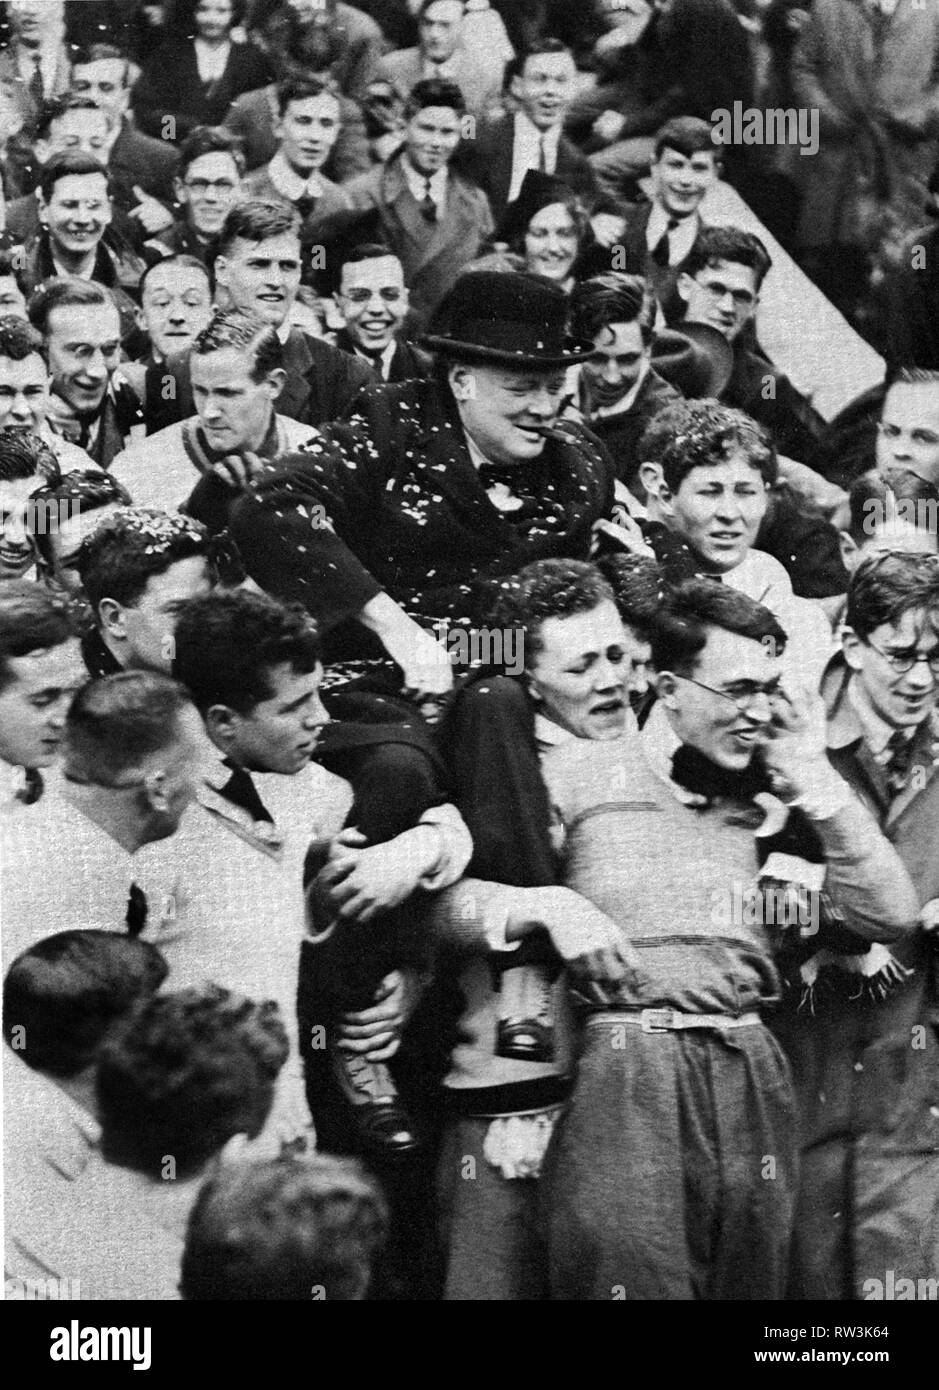 Winston Churchill elected Chancellor of Bristol University in 1930.  Carried shoulder high by students. - Stock Image